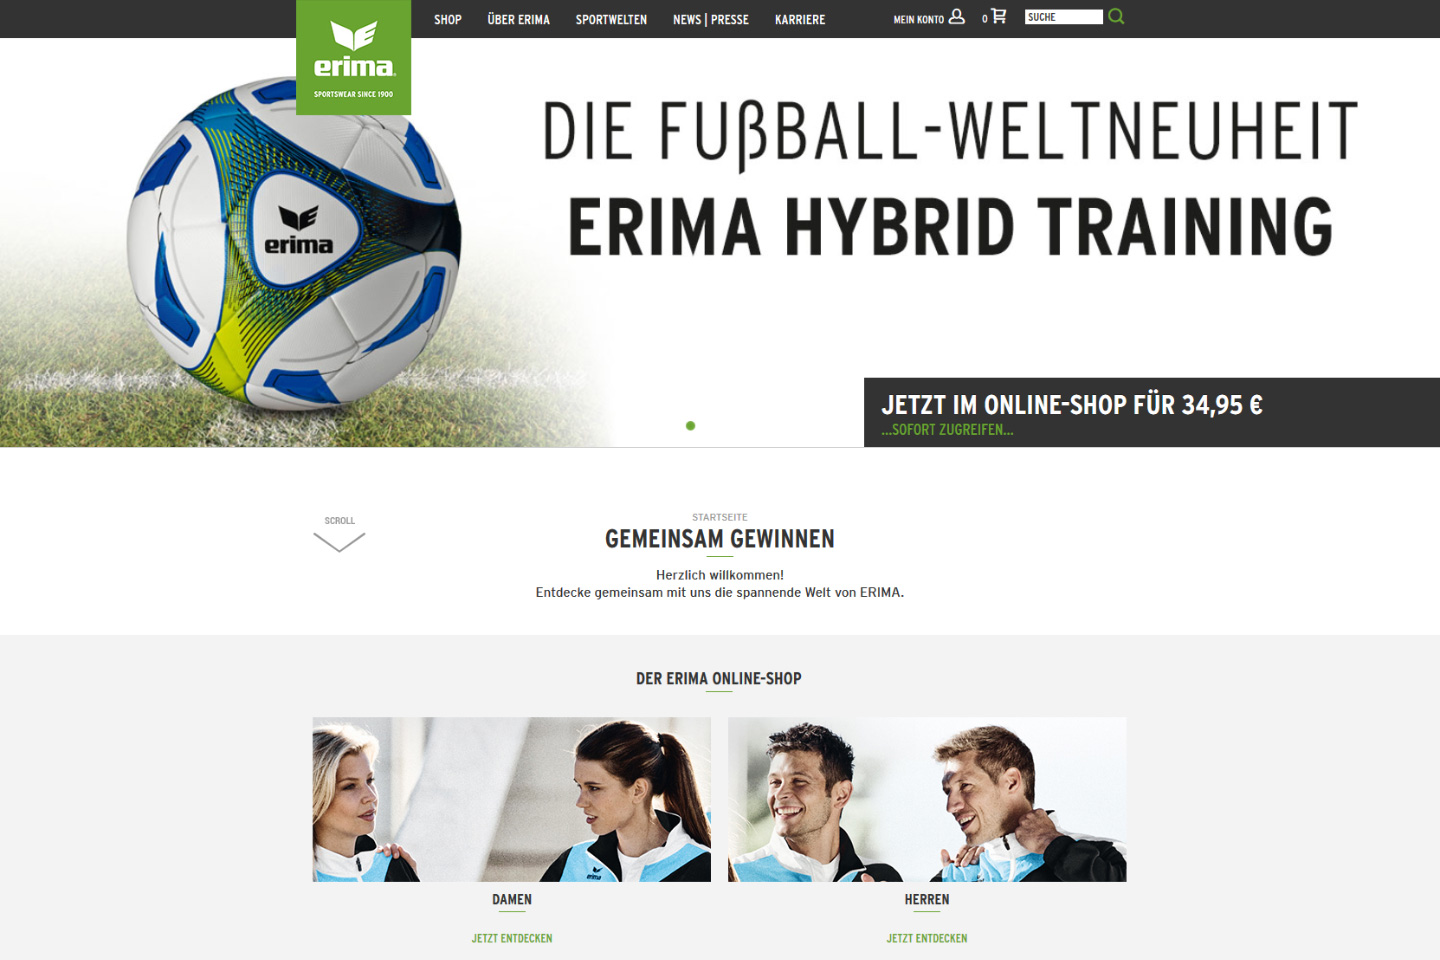 Erima - Online-Shop und Website Detail 01